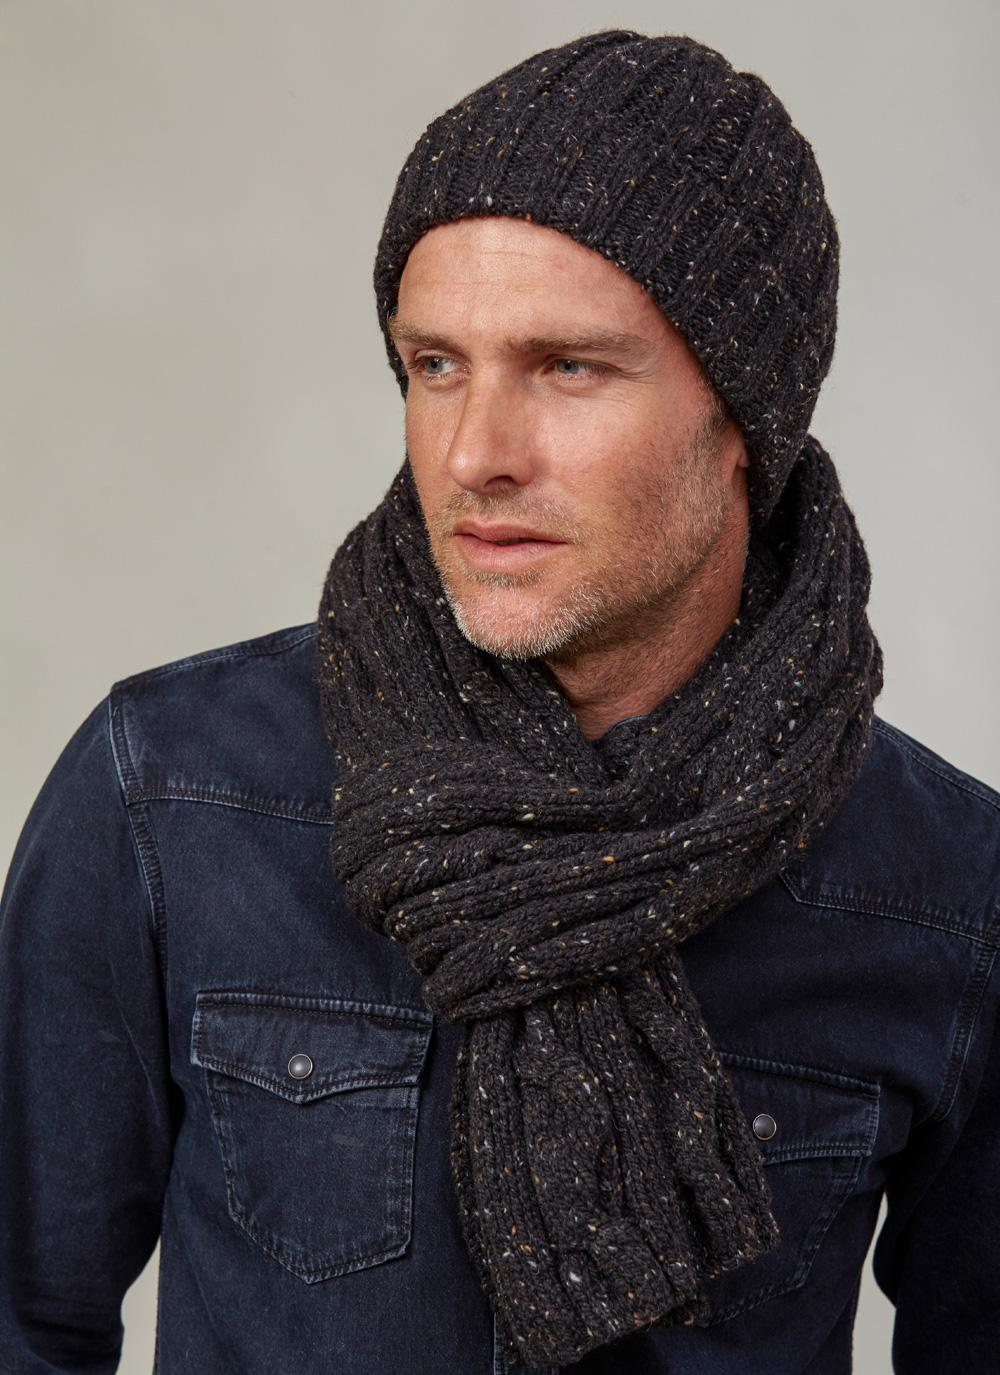 Fisherman 100% Merino Wool Mens Scarf and Beanie - Black Flecks